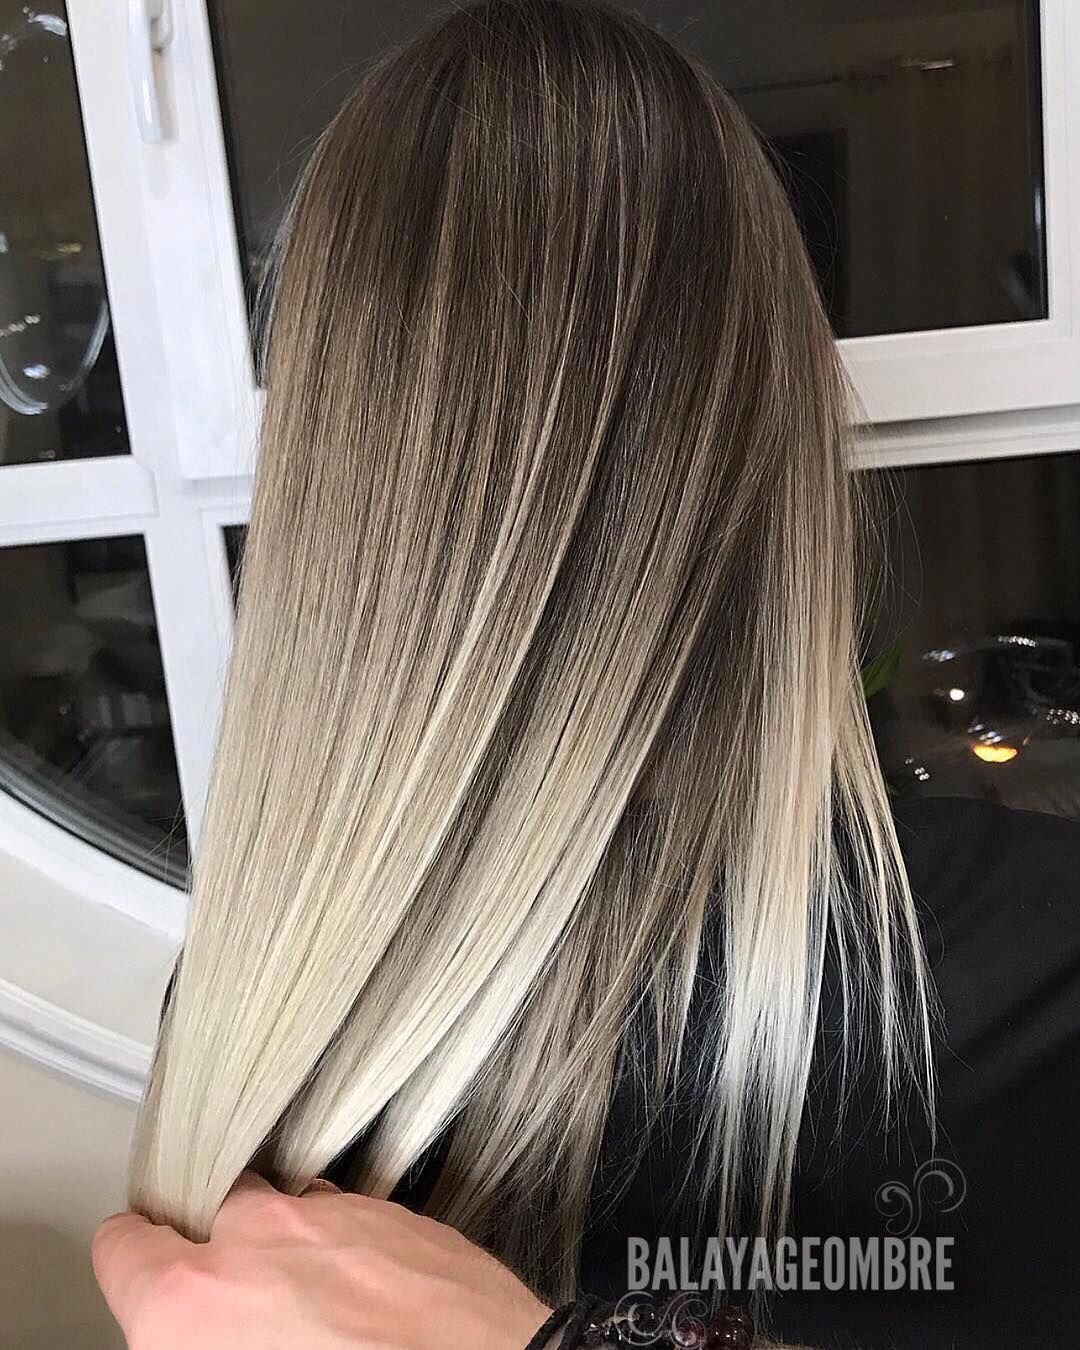 10 Ombre Balayage Hairstyles For Medium Length Hair Hair Color 2020 Medium Length Hair Styles Ombre Hair Blonde Medium Hair Styles